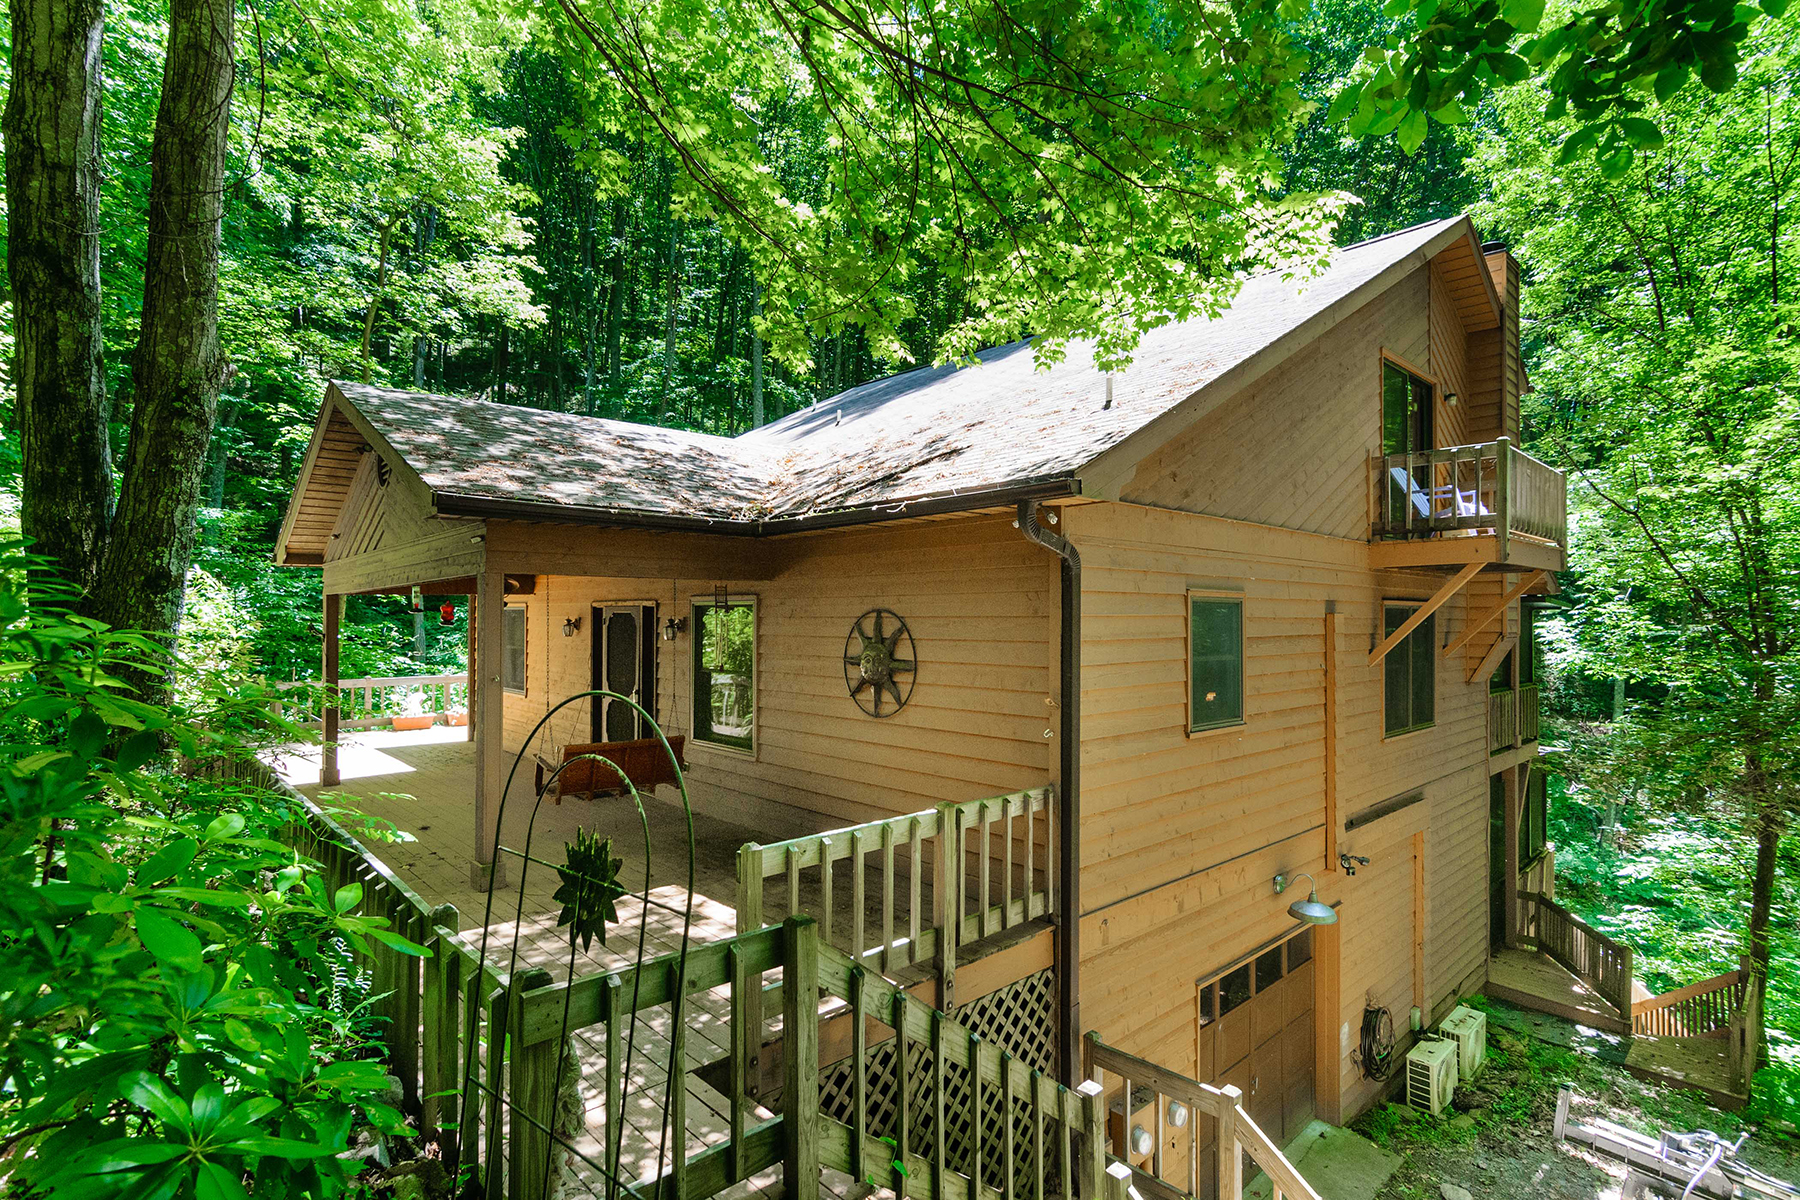 Single Family Home for Sale at NORTH ASHEVILLE LIVING AT ITS FINEST 500 Lynn Cove Rd, Asheville, North Carolina 28804 United States